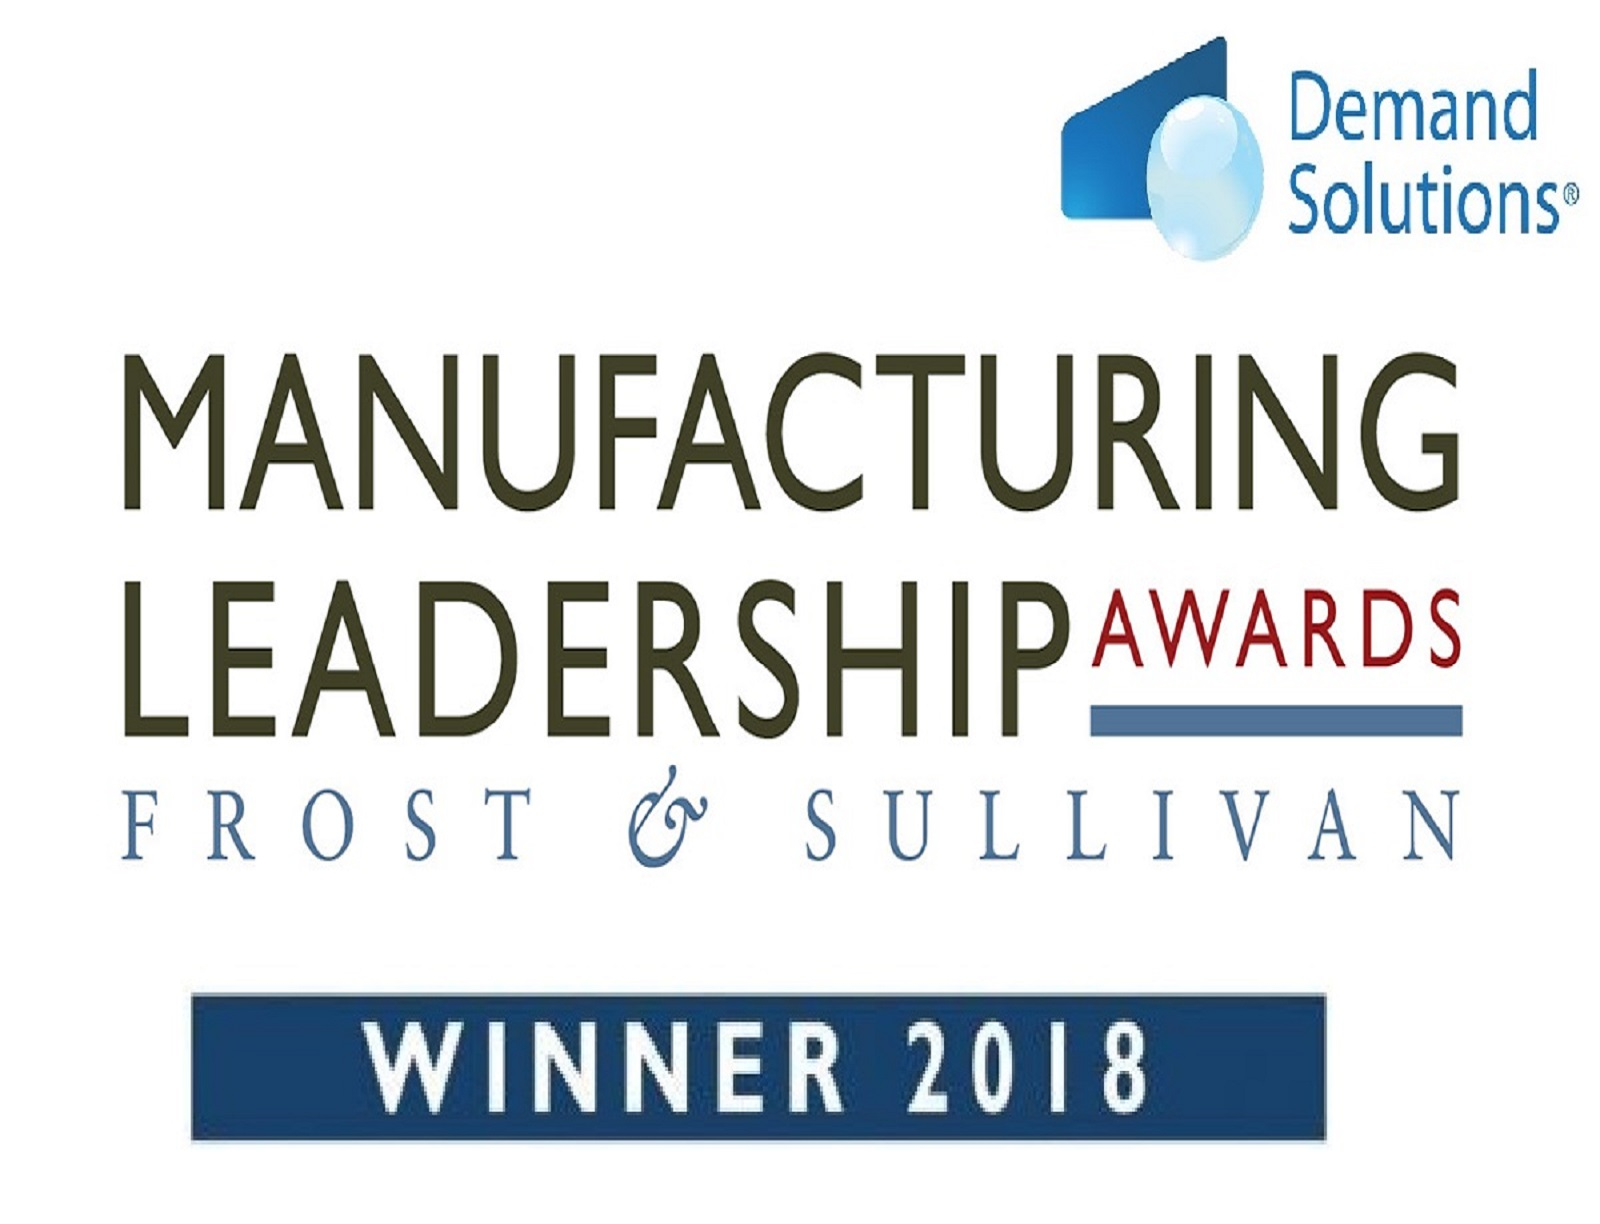 https://itsupplychain.com/wp-content/uploads/2018/10/Frost-Sullivan-Frost-Sullivan-Manufacturing-Leadership-Awards-Resized.jpg